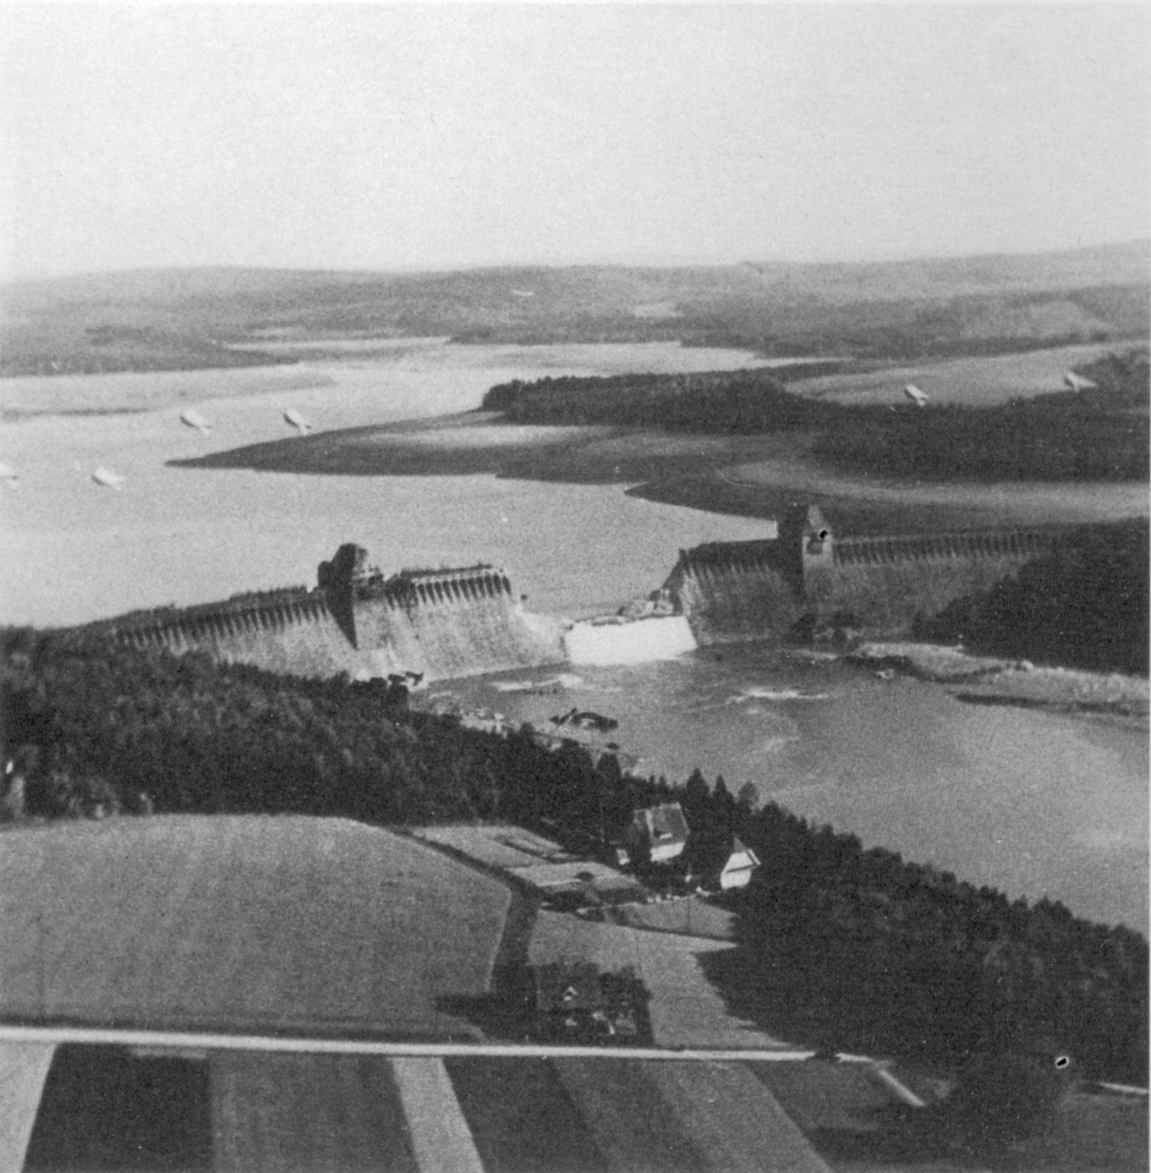 """Water continues to pour through the Möhne Dam (seen from a low flying RAF photo reconnaissance Supermarine Spitfire) after it was struck the previous night by an """"Upkeep"""" bouncing bomb dropped from a British Avro Lancaster heavy bomber during the now famous """"Dambuster"""" raid. Ruhr, Germany. 18th of May 1943."""